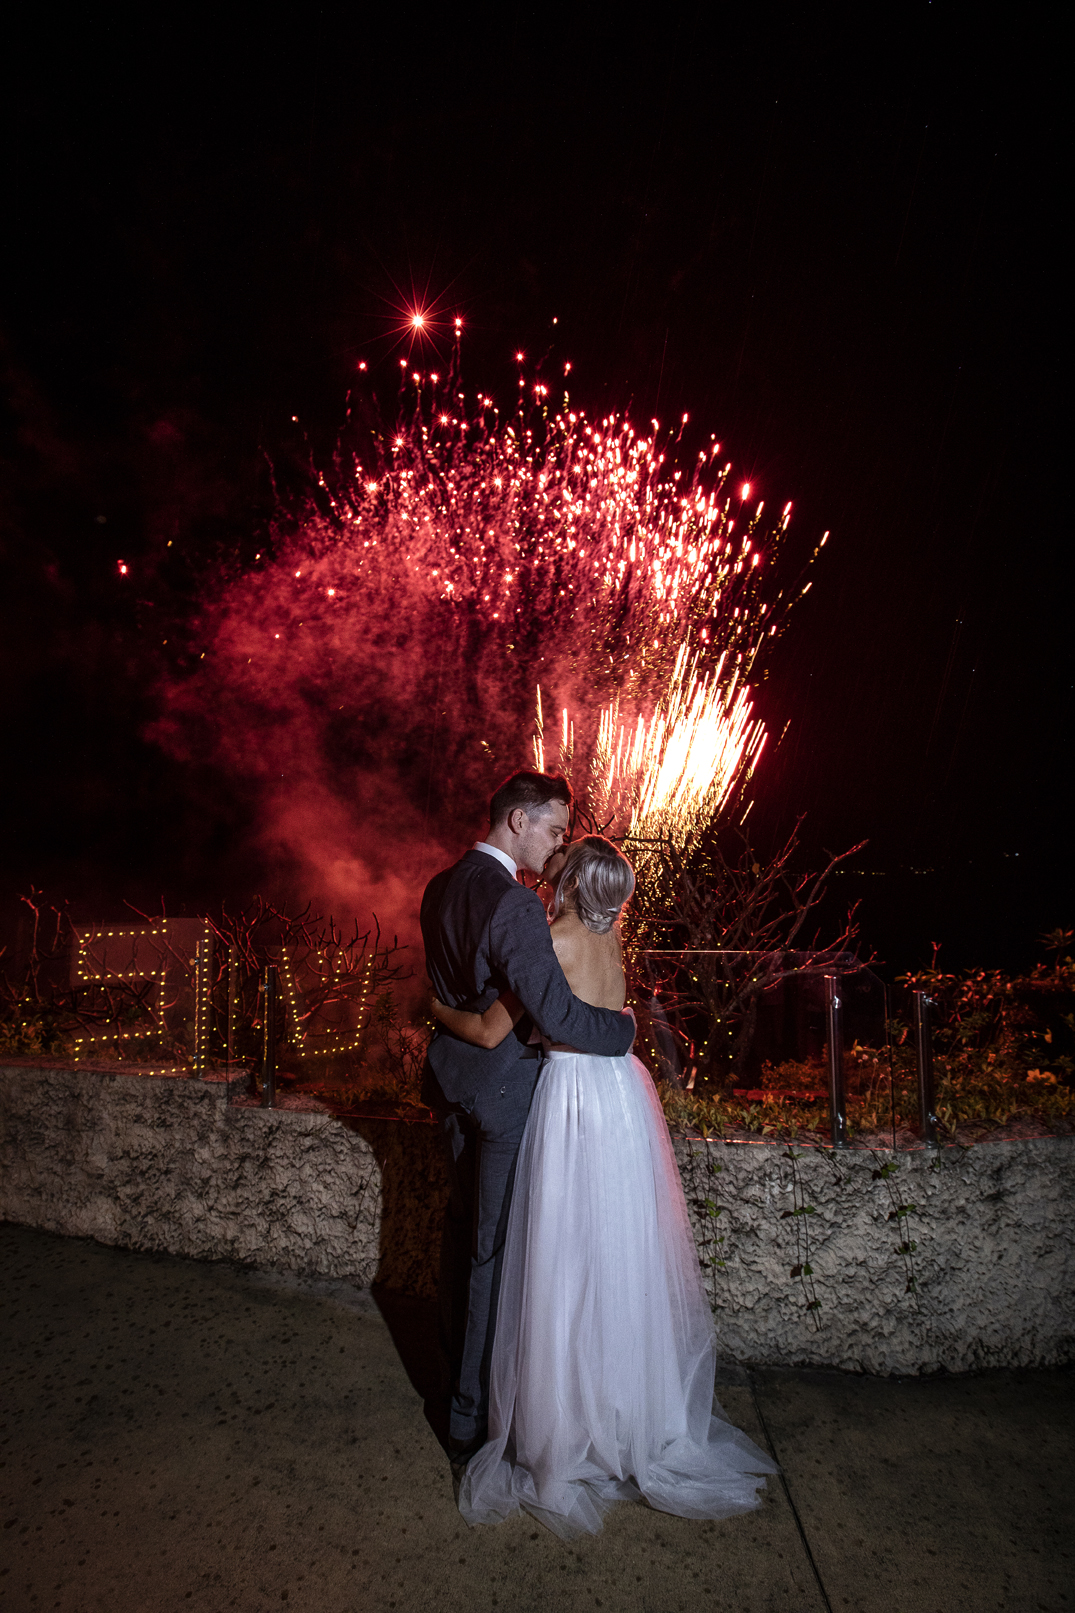 Villa Botanica Fireworks Wedding photography in the Whitsundays by Brooke Miles